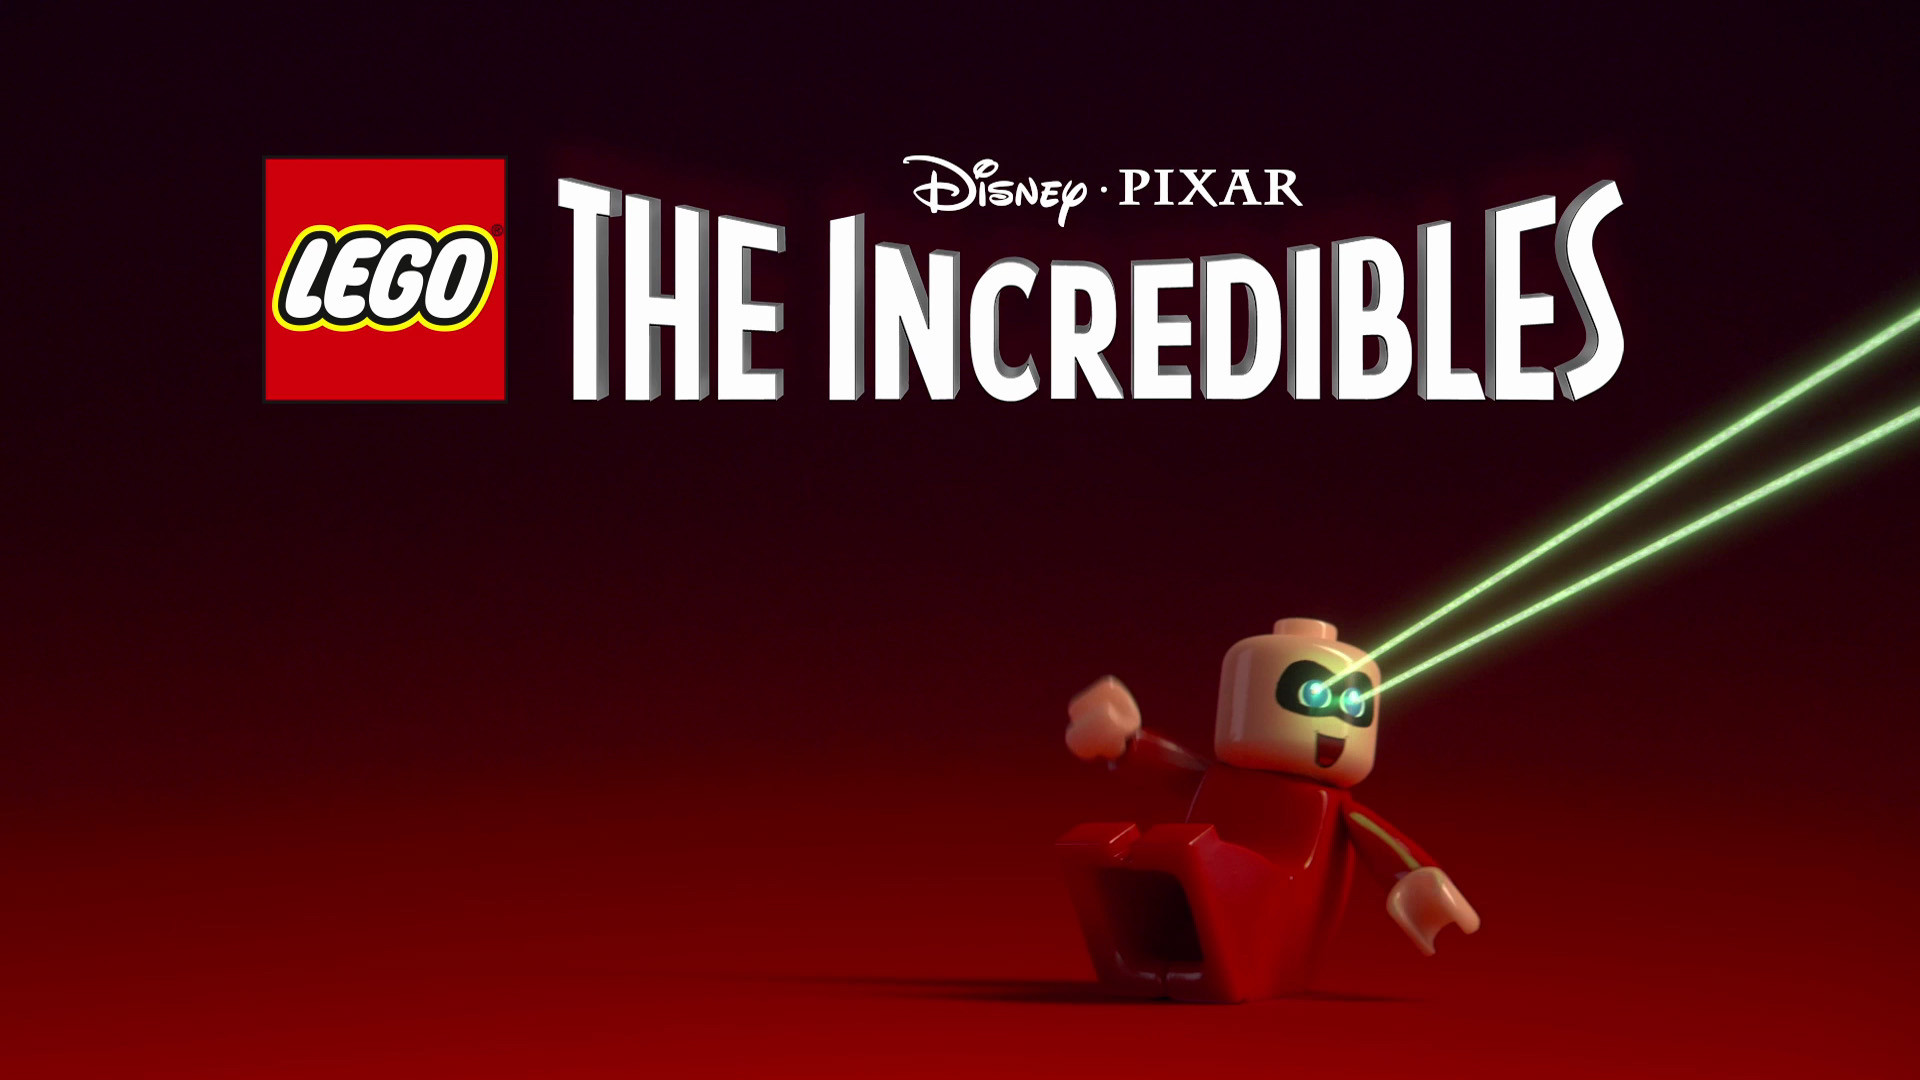 Res: 1920x1080, Lego superheroes. Wallpaper from LEGO The Incredibles